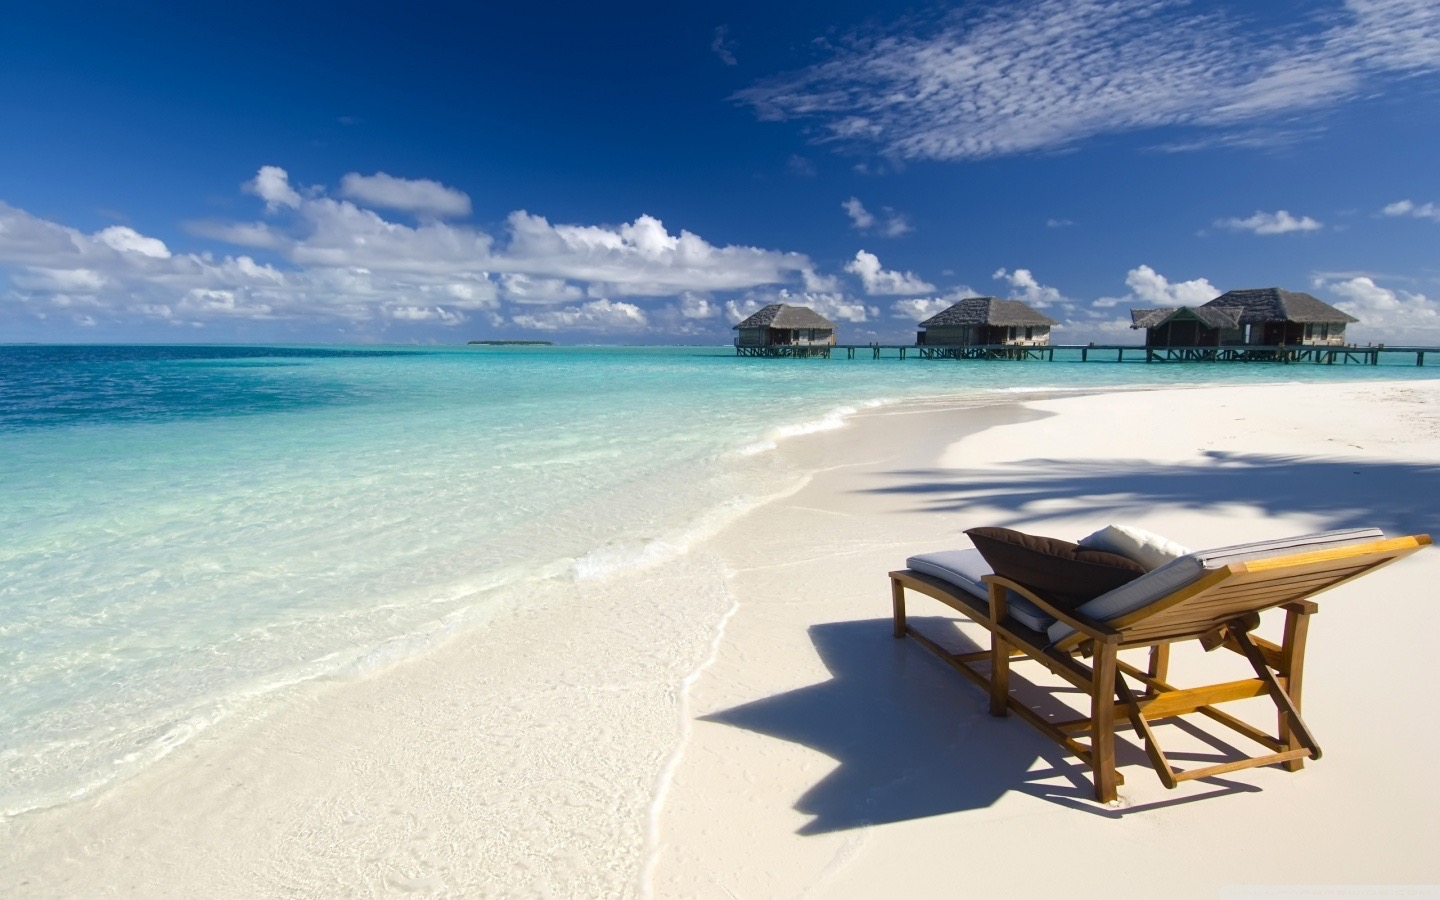 summer_vacation_2-wallpaper-1440x900.jpg